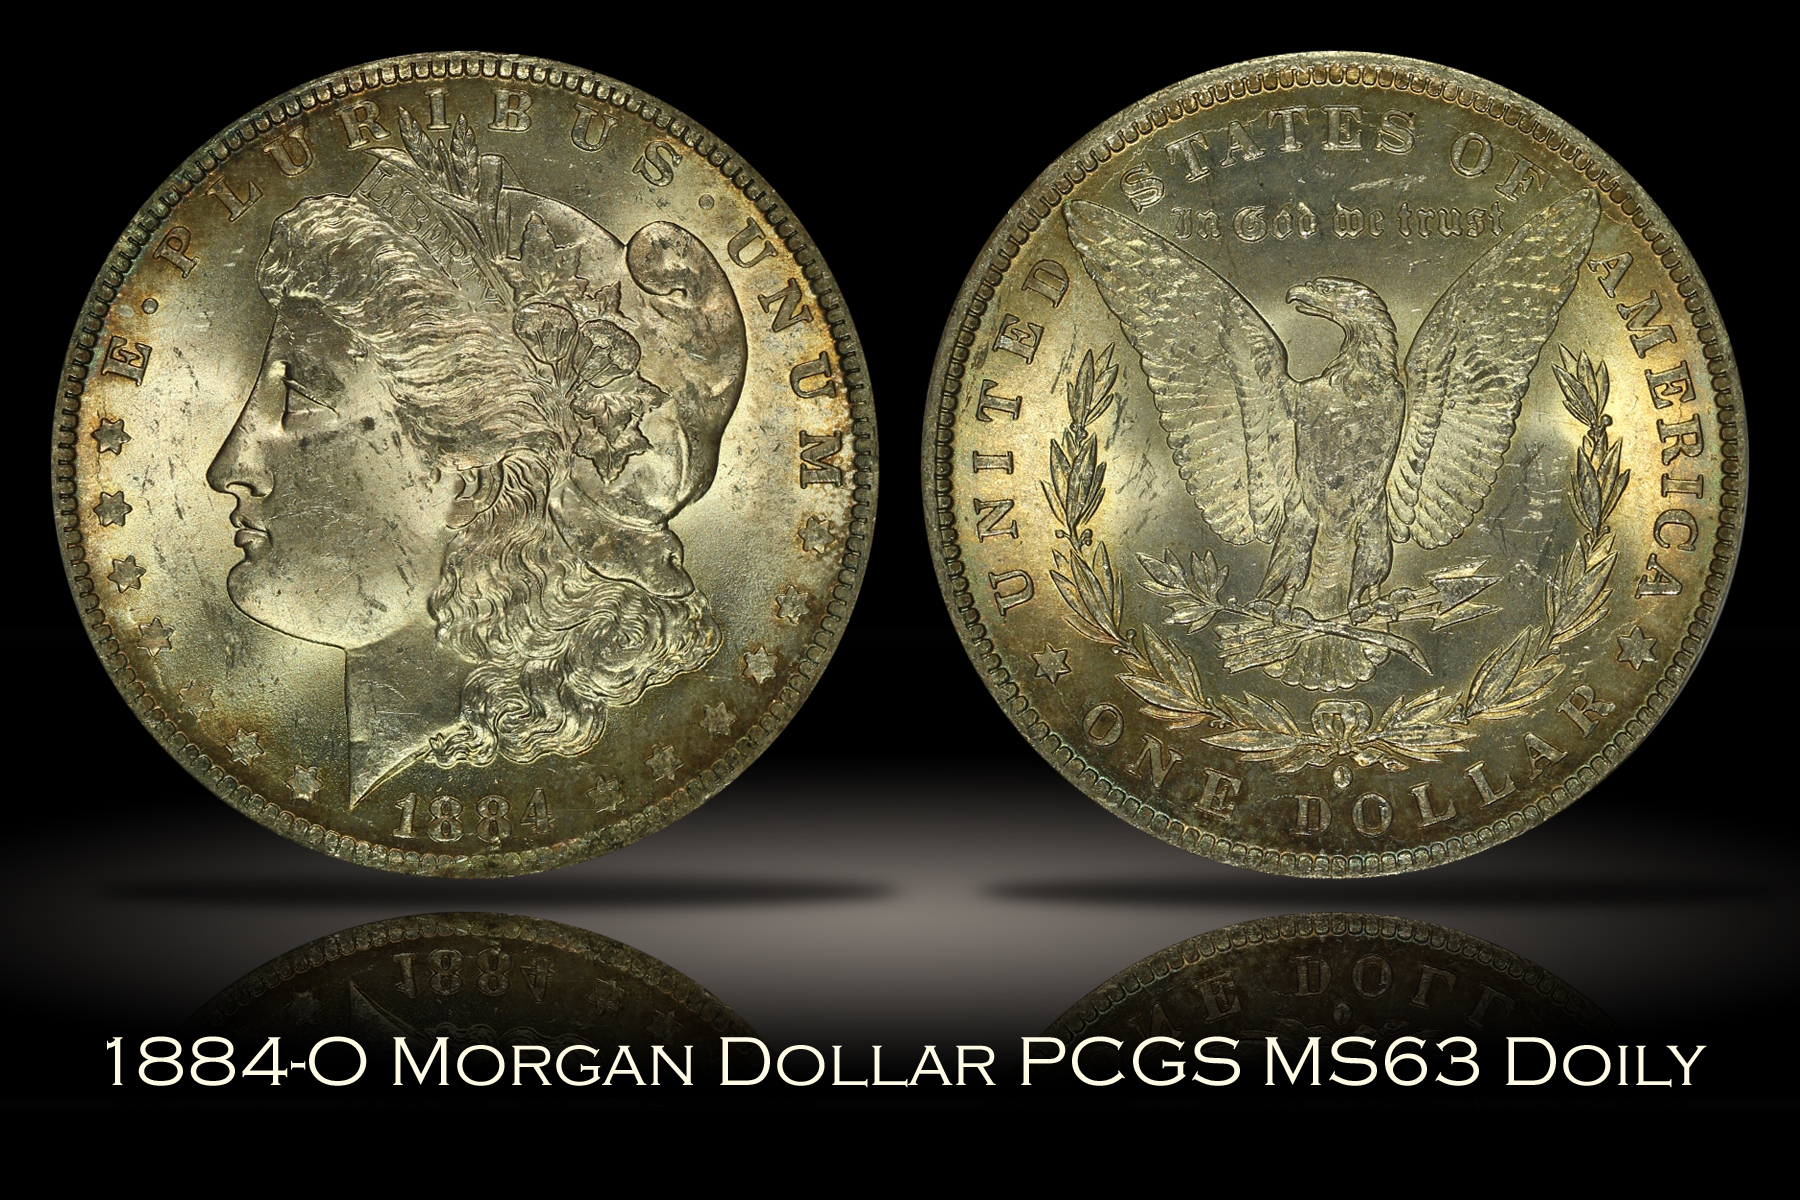 1884-O Morgan Dollar PCGS MS63 DOILY